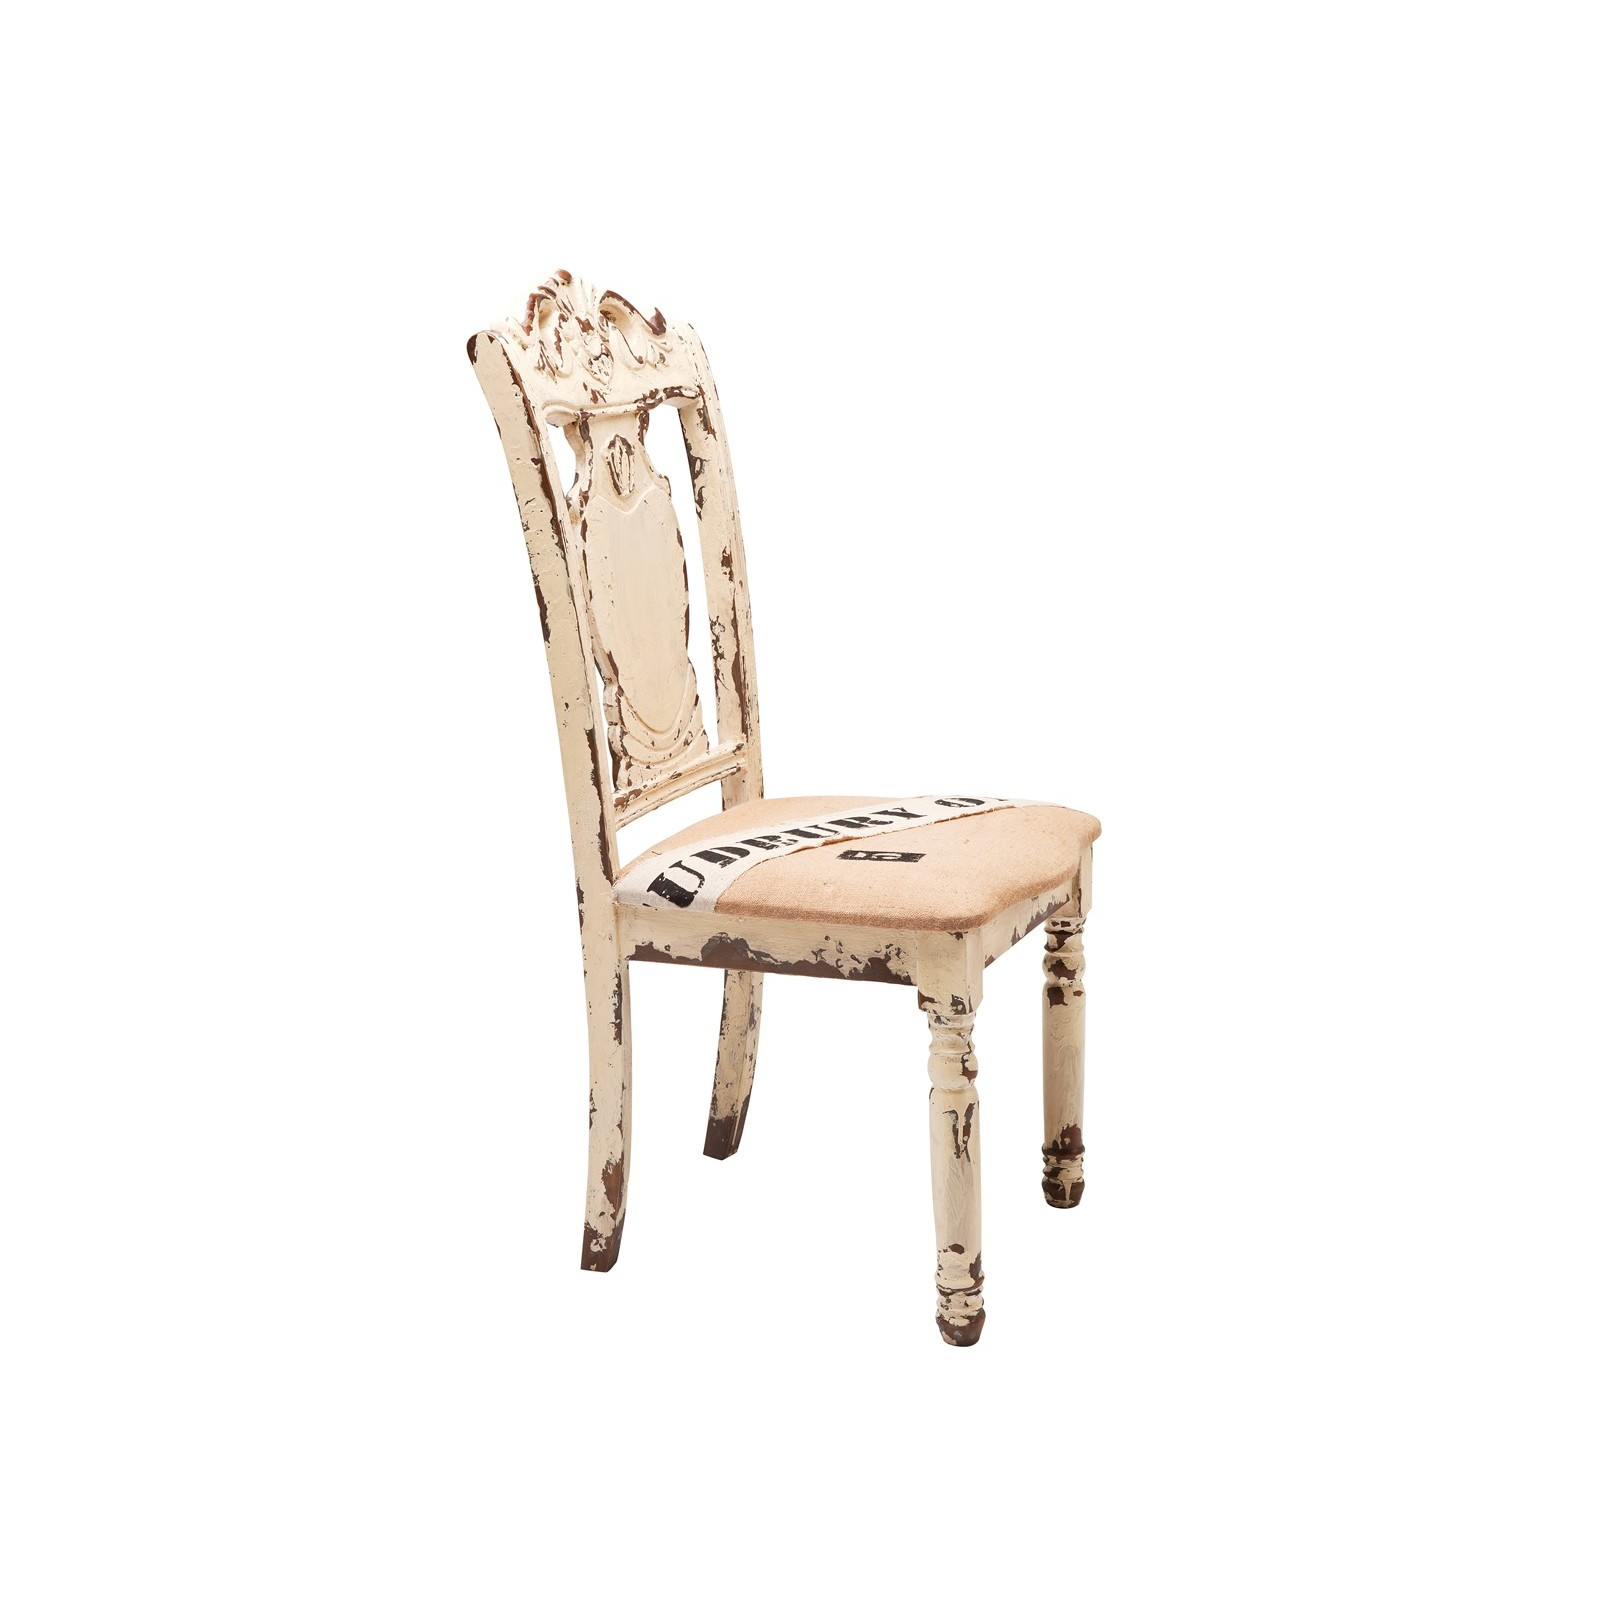 Chaise coloniale blanche harlem kare design for Chaise kare design